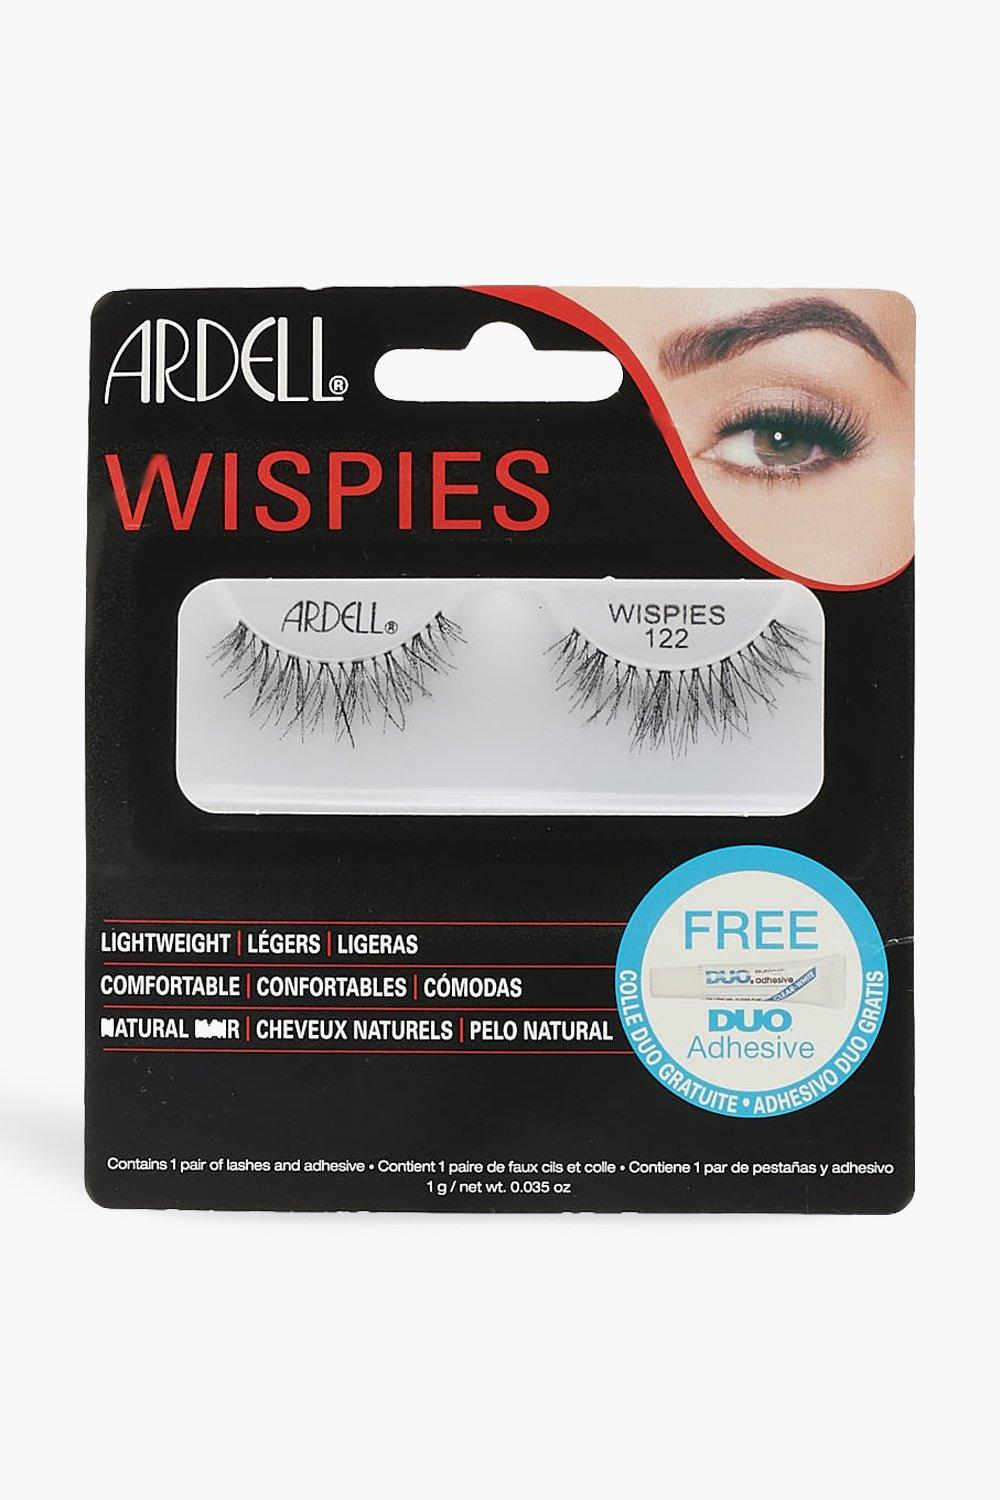 Ardell Womens Ardell Wispies 122 - Black - One Size, Black